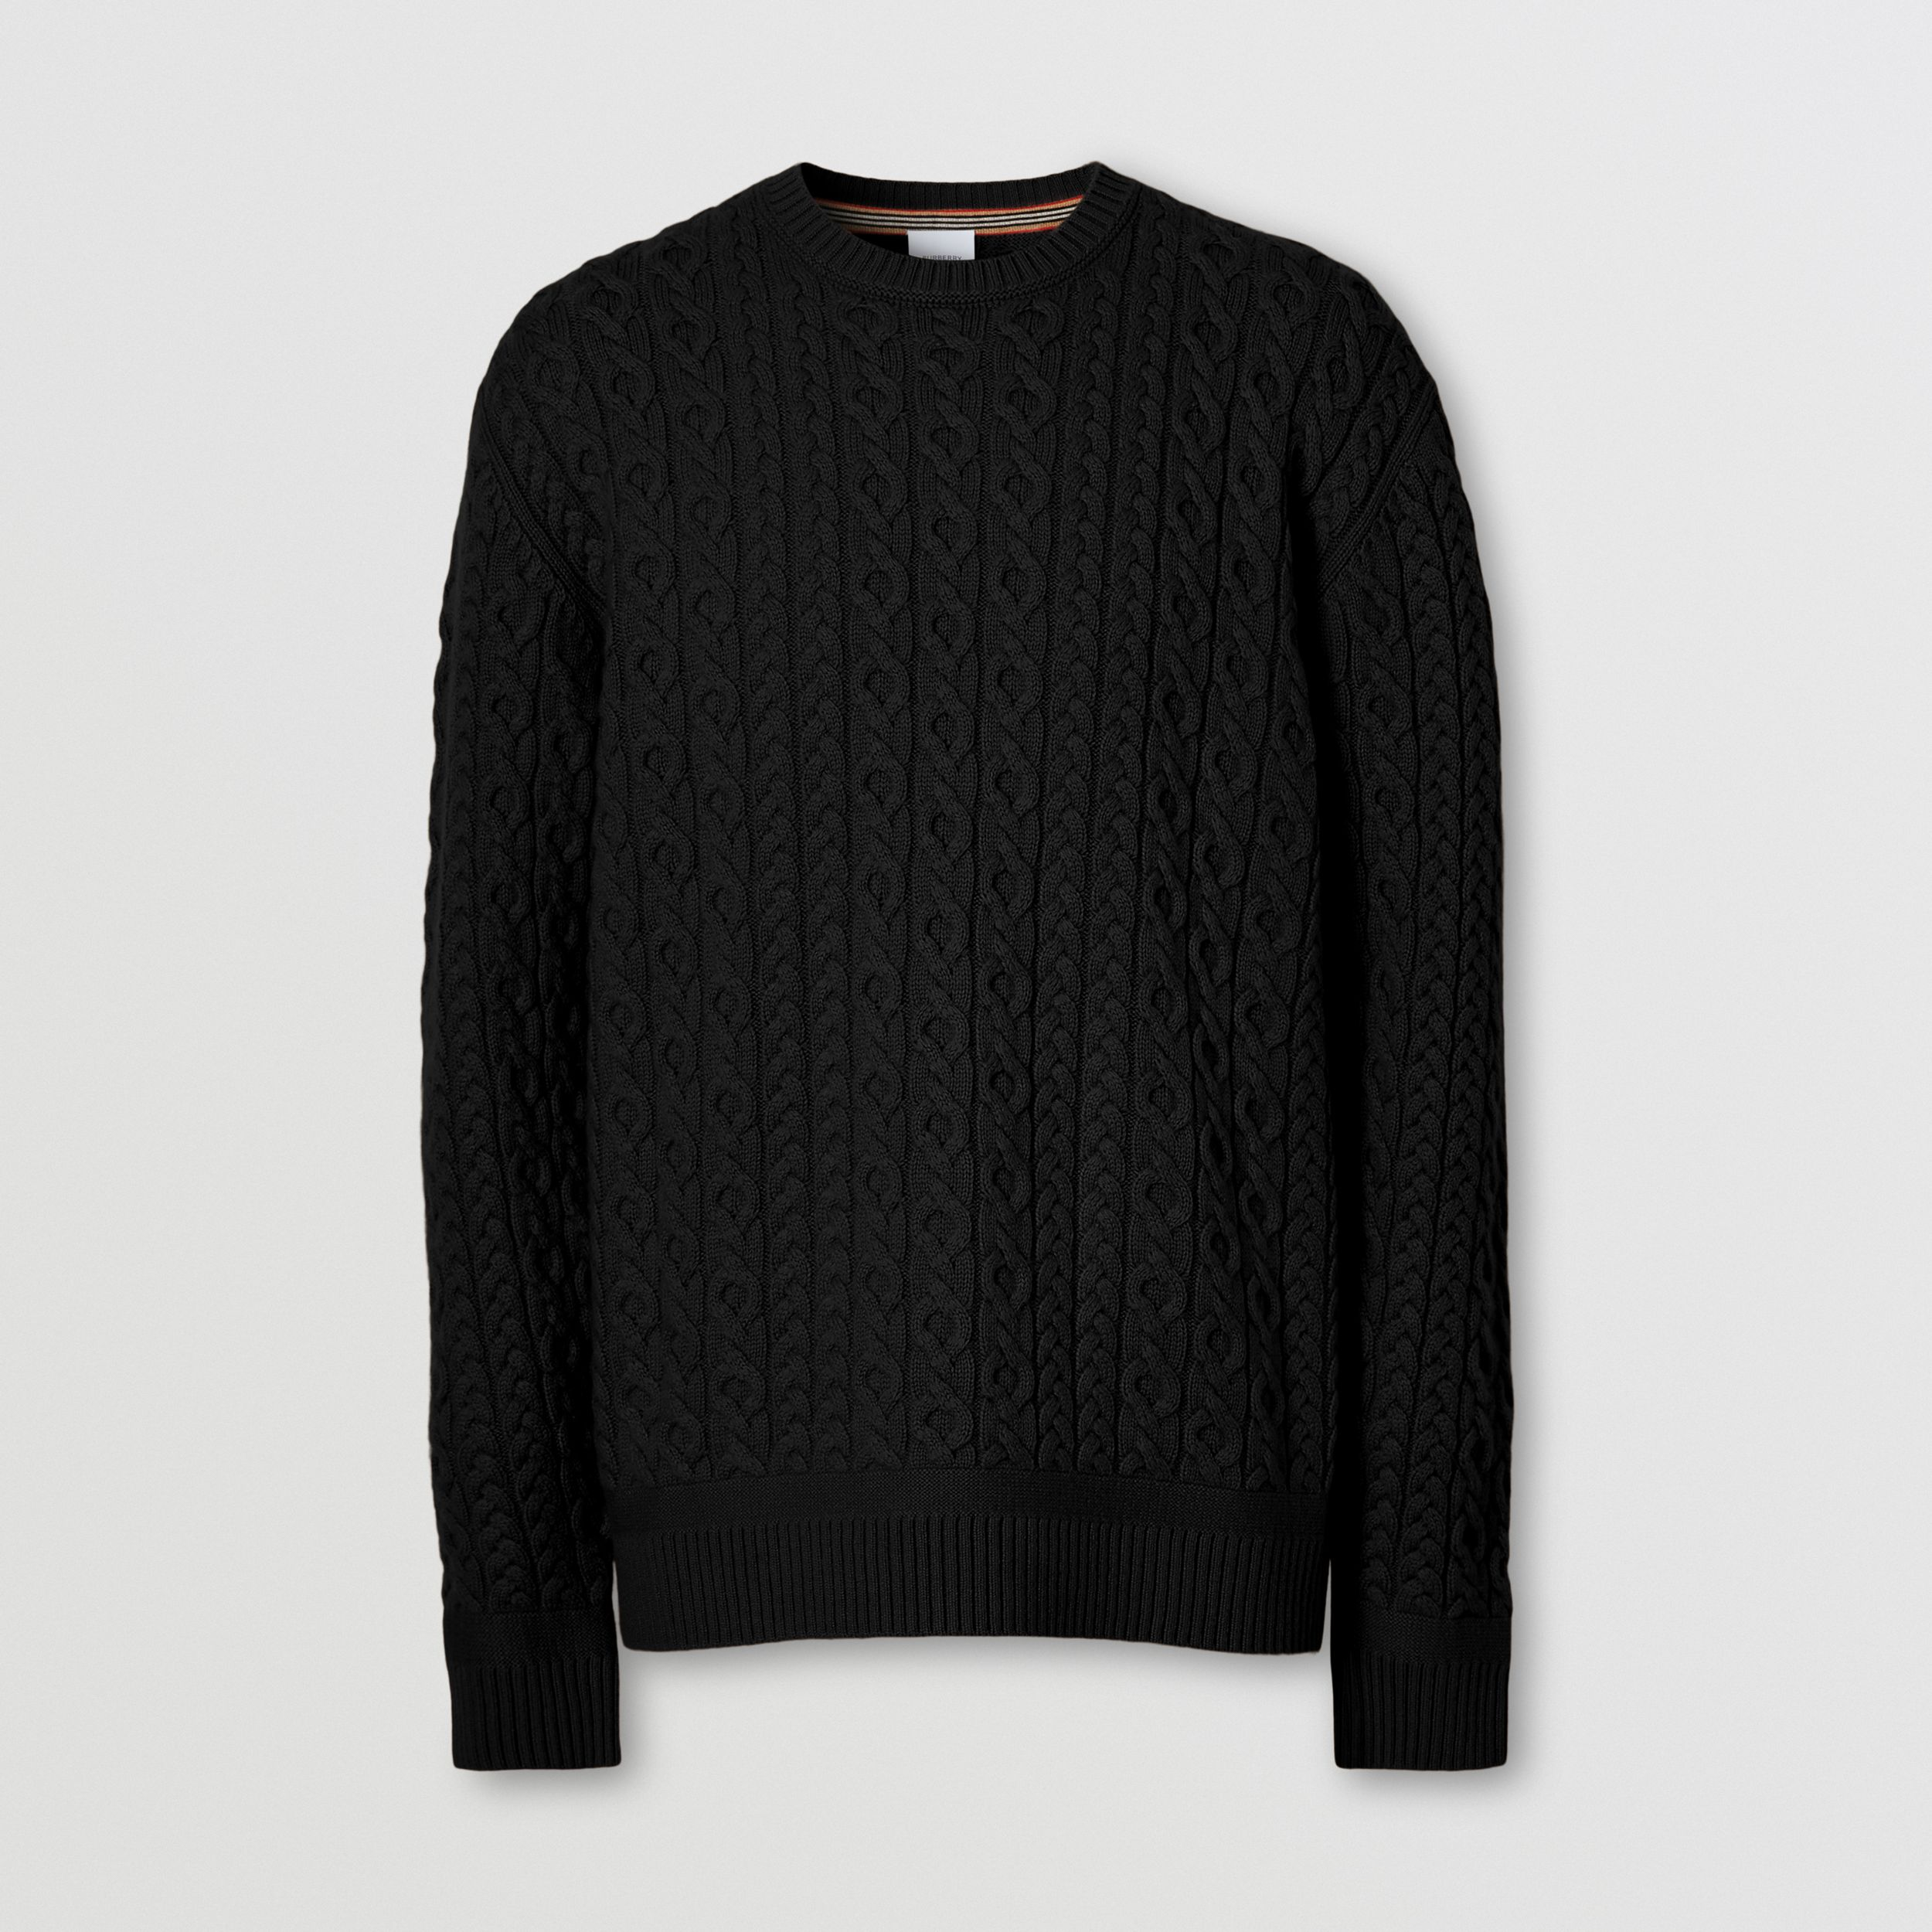 Cable Knit Wool Cashmere Sweater in Black - Men | Burberry - 4